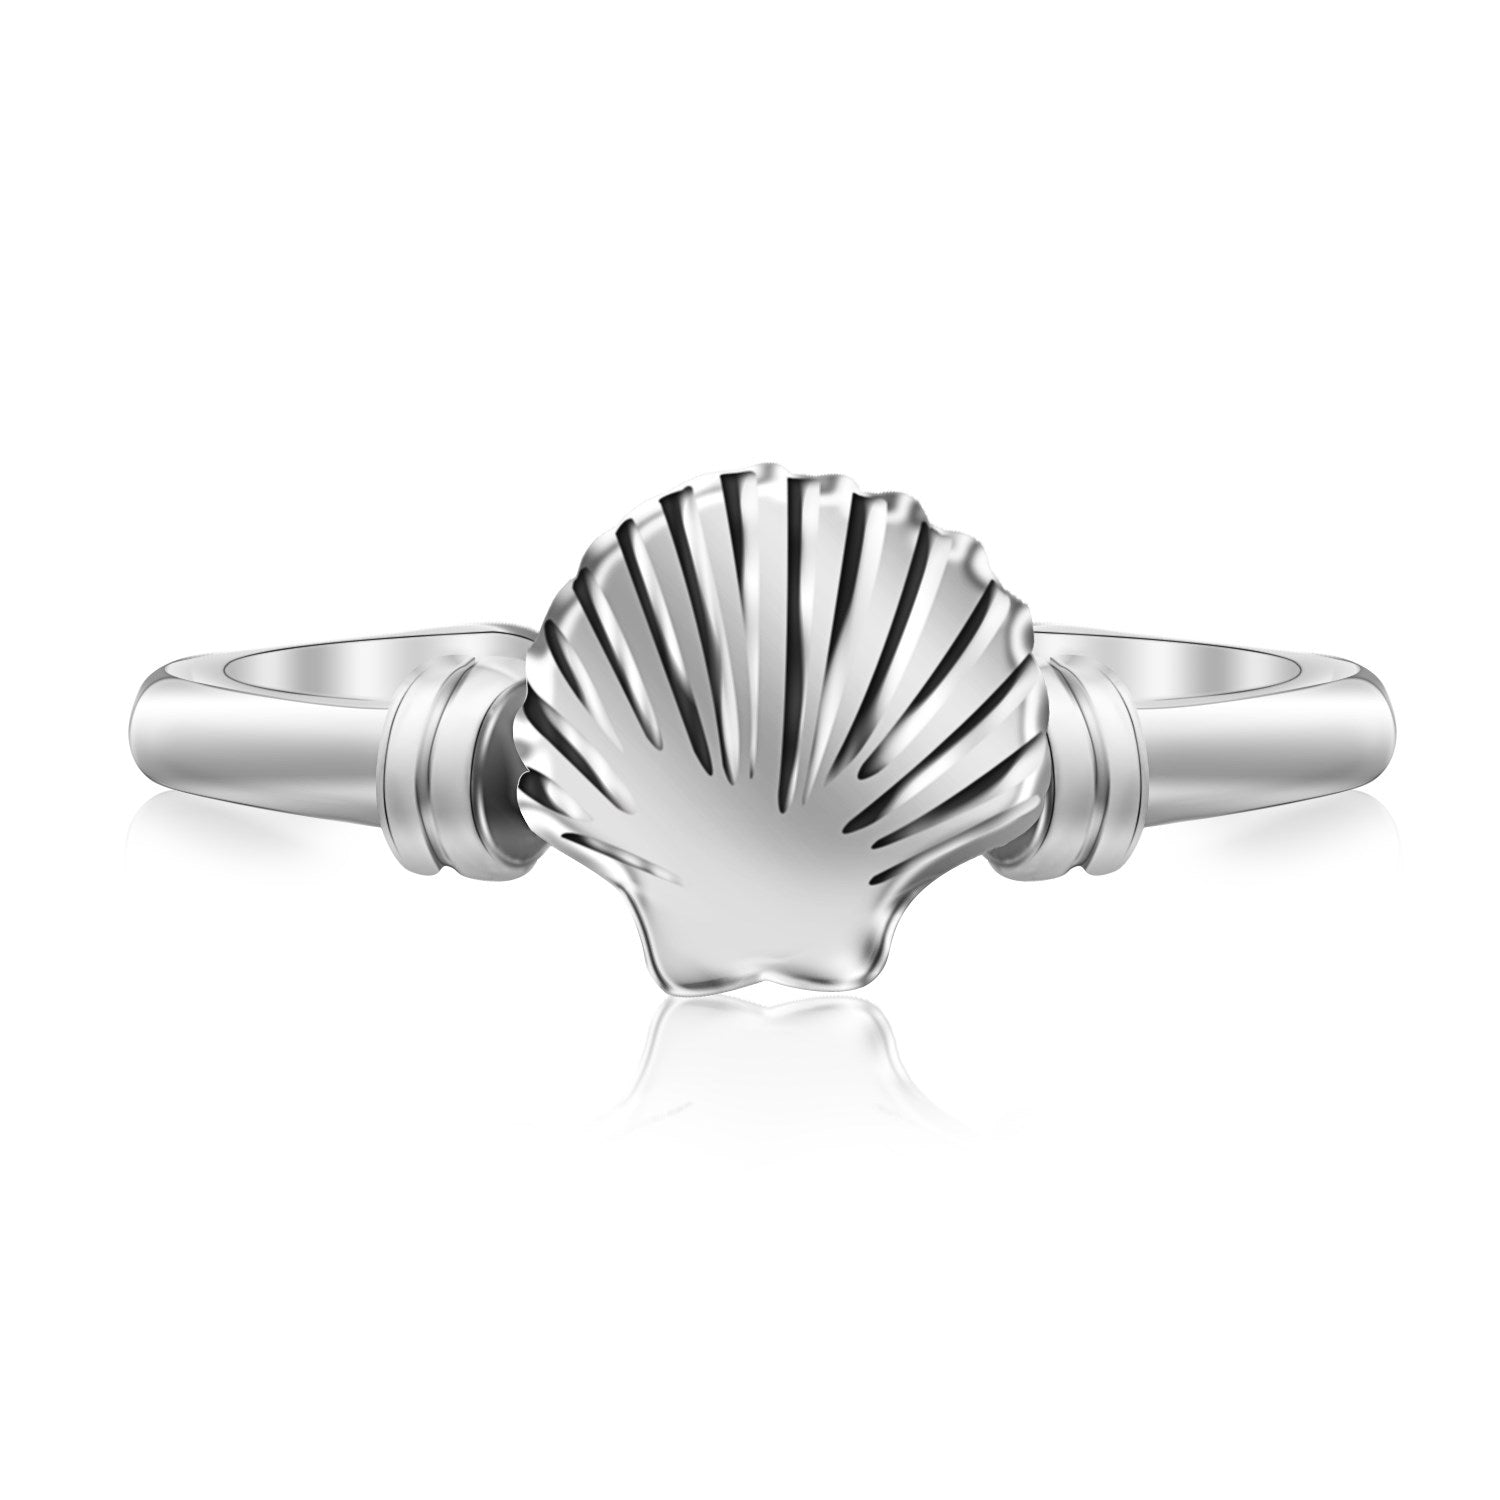 Sterling Silver Shell Motif Toe Ring with Rhodium Finishing - Uniquepedia.com